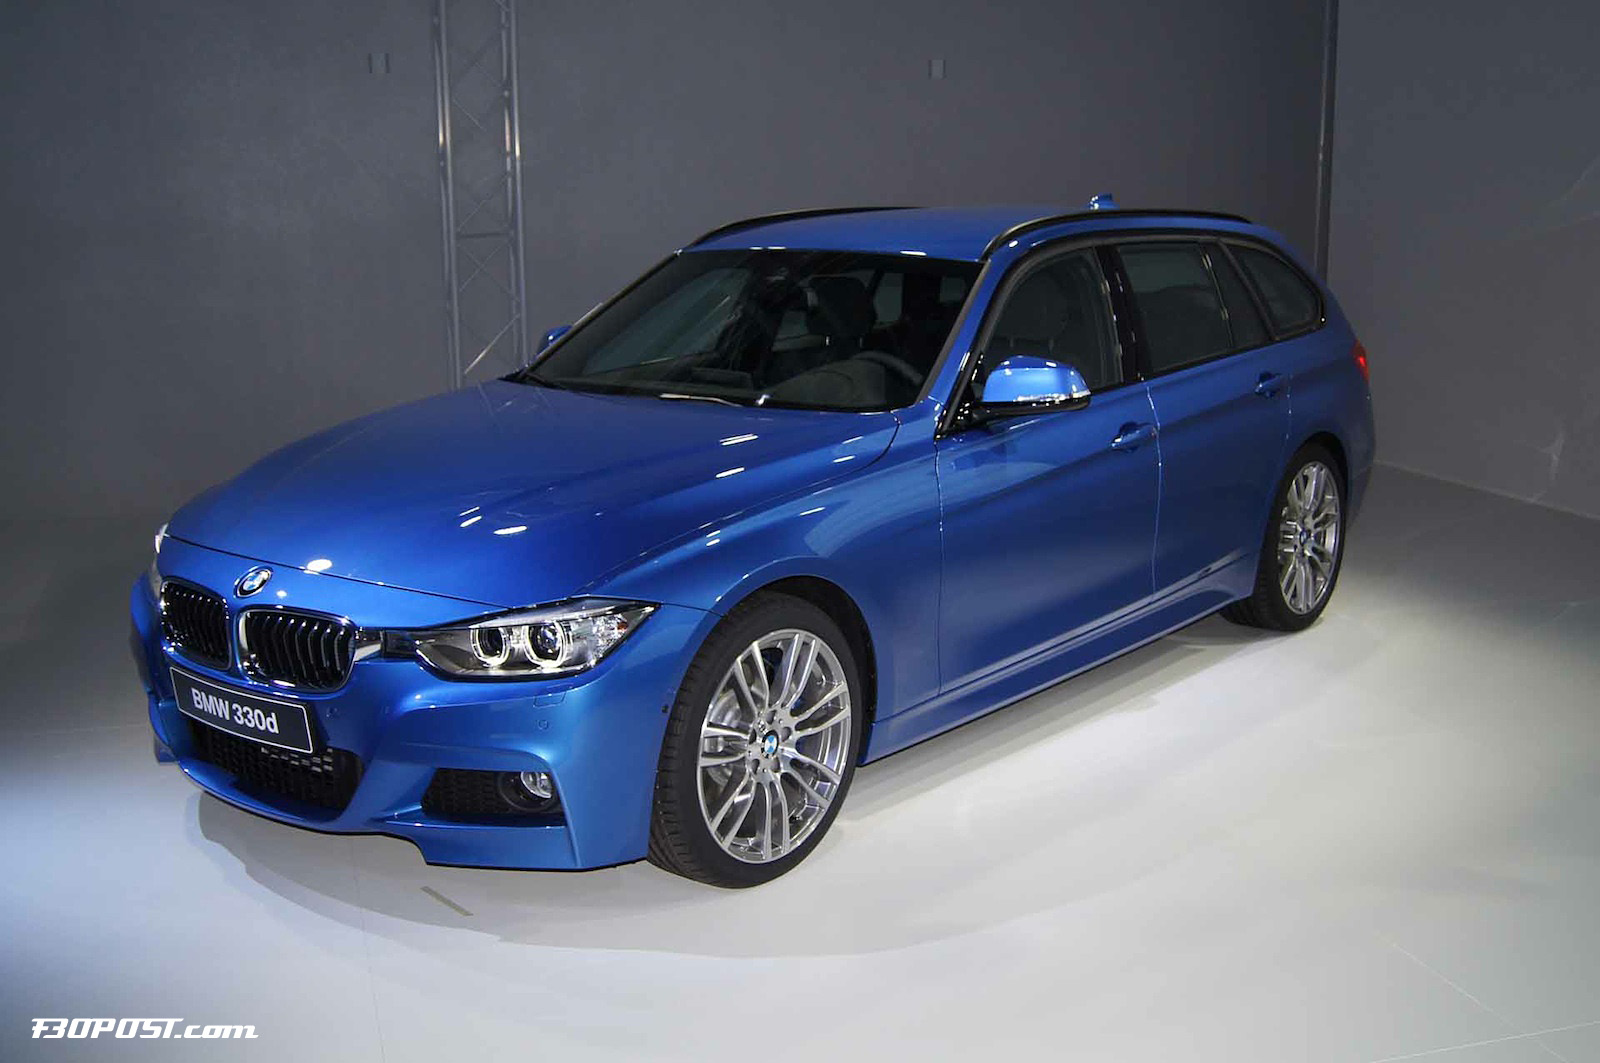 Bmw 328i 0 60 >> Bmw F31 - BMW Forum, BMW News and BMW Blog - BIMMERPOST